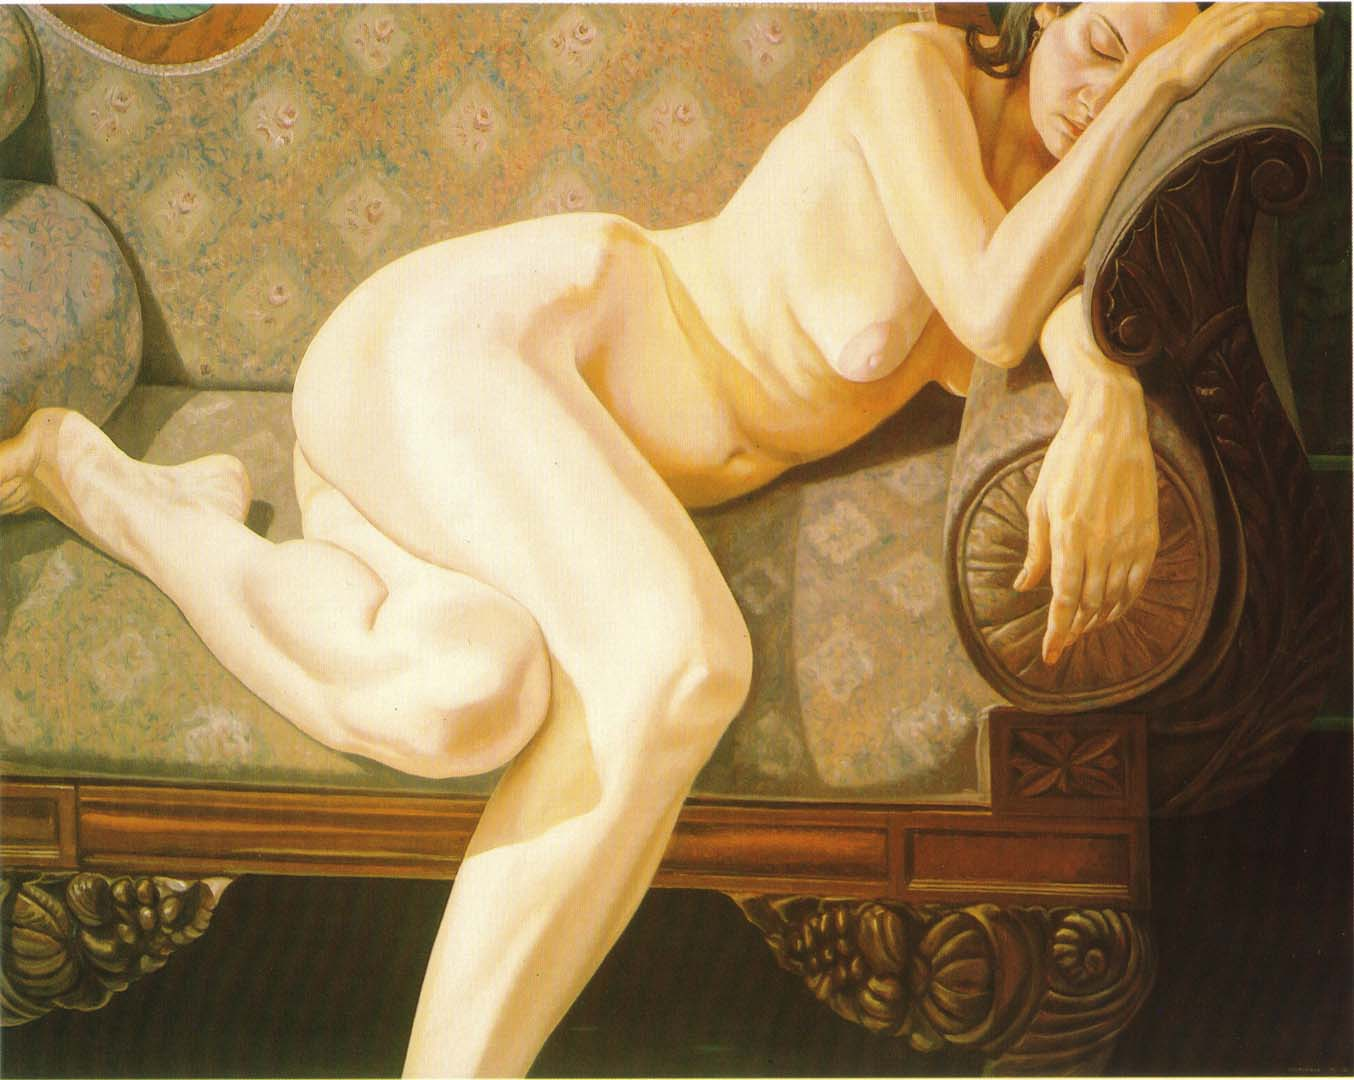 1973 Female Model Reclining on Empire Sofa Oil on Canvas 48 x 60